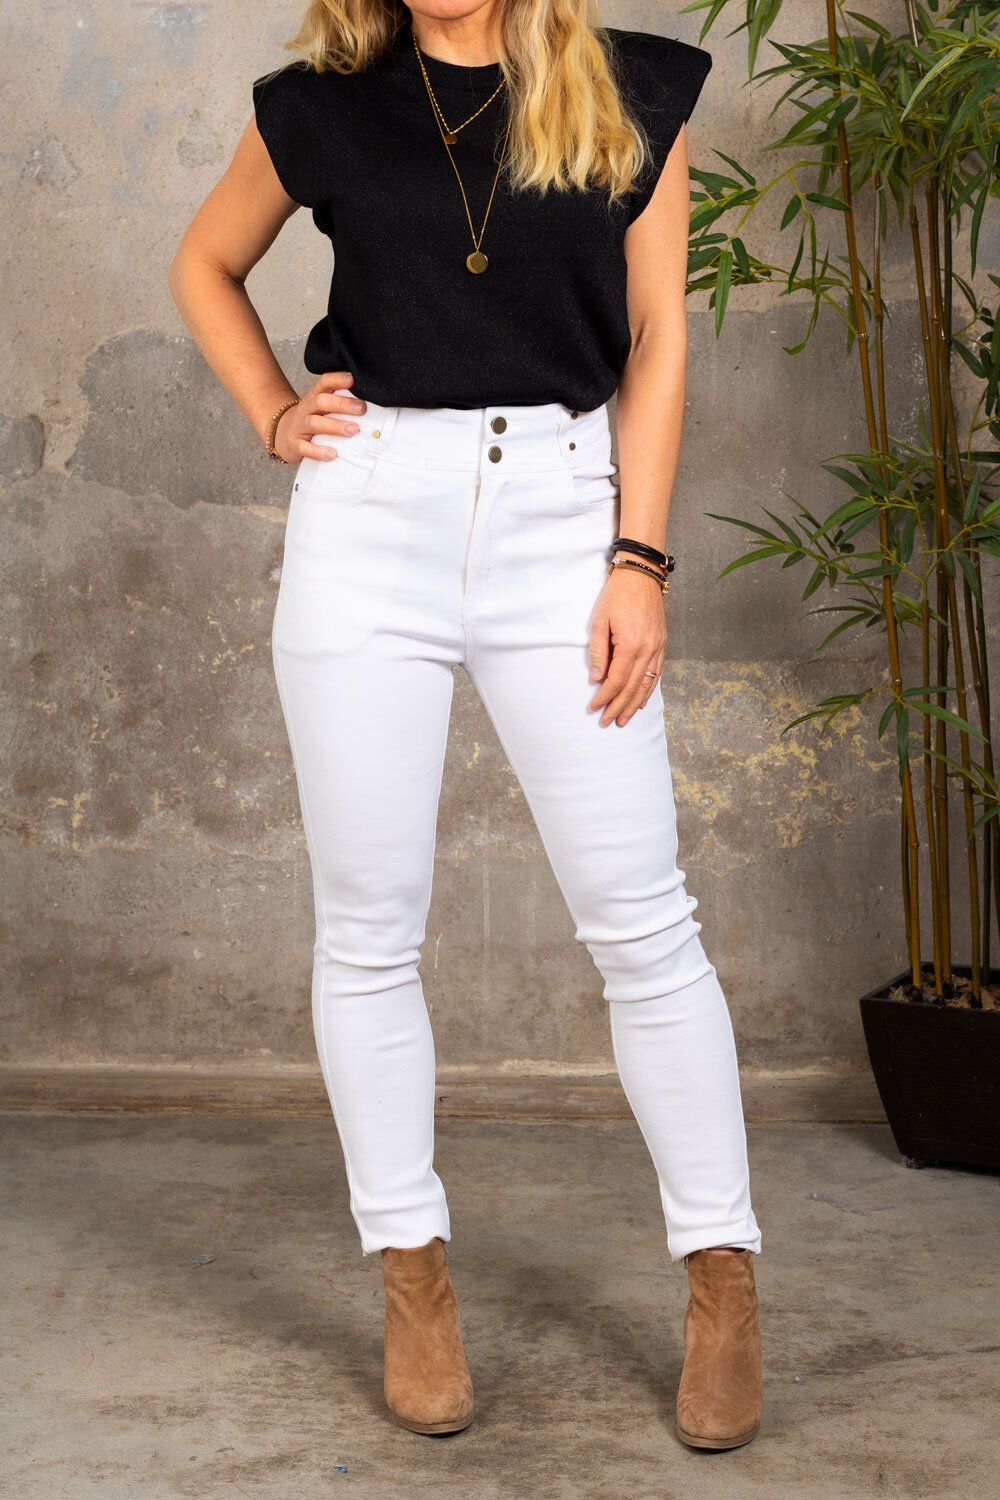 Trousers with Gold Details - NL83045 - White